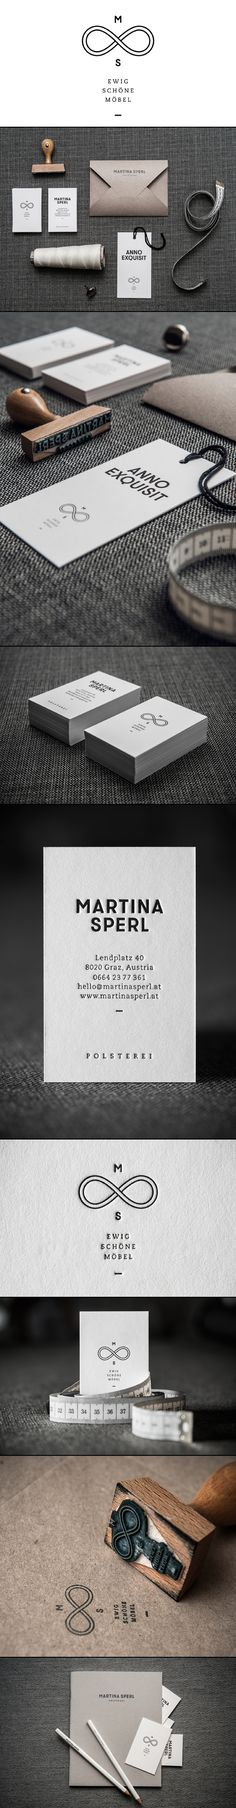 Martina Sperl Branding by moodley brand identity via Behance.